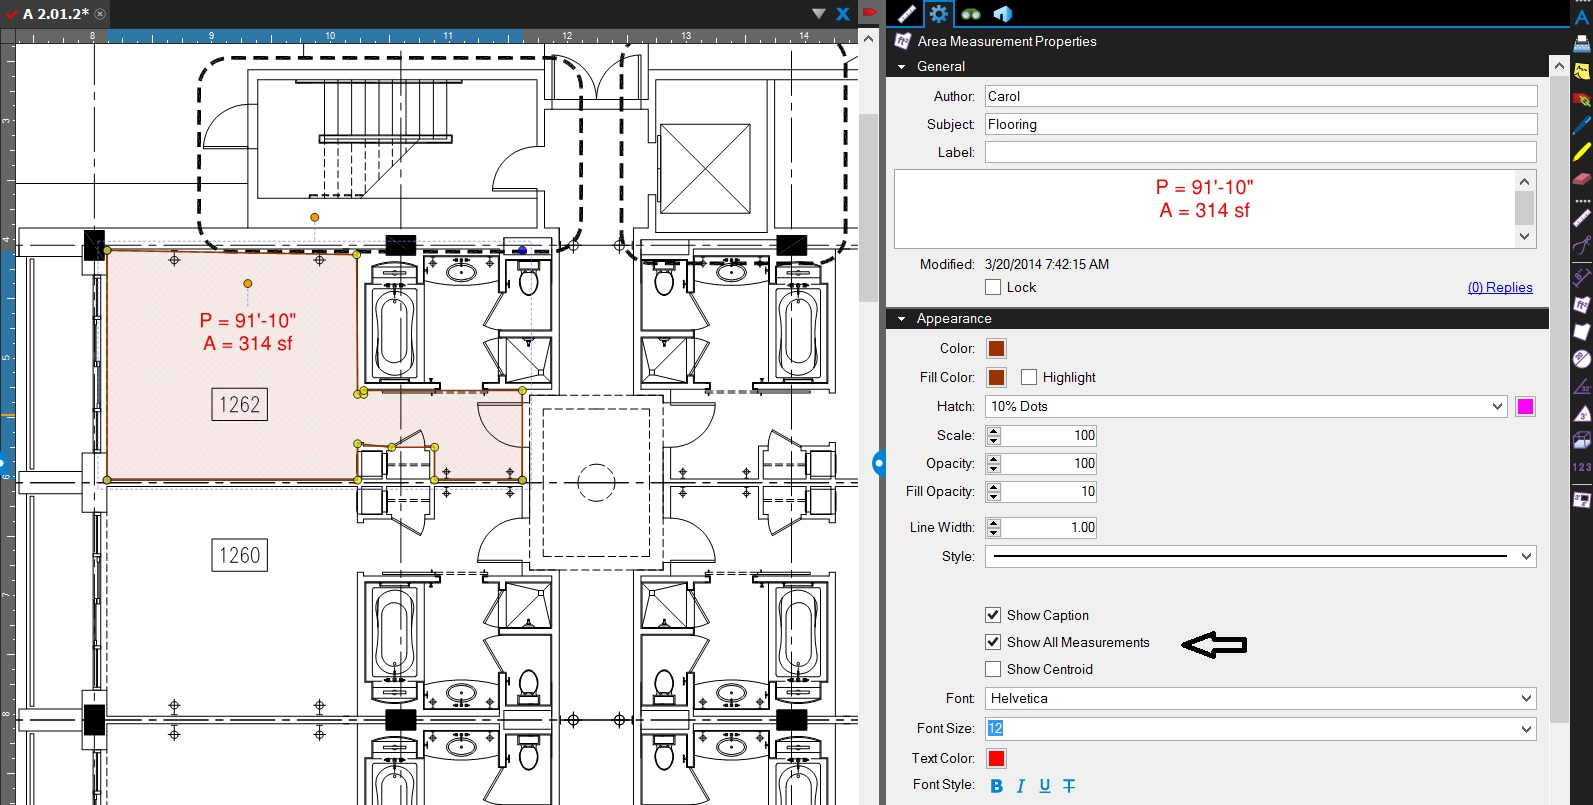 How to make area and perimeter measurements display in Bluebeam Revu